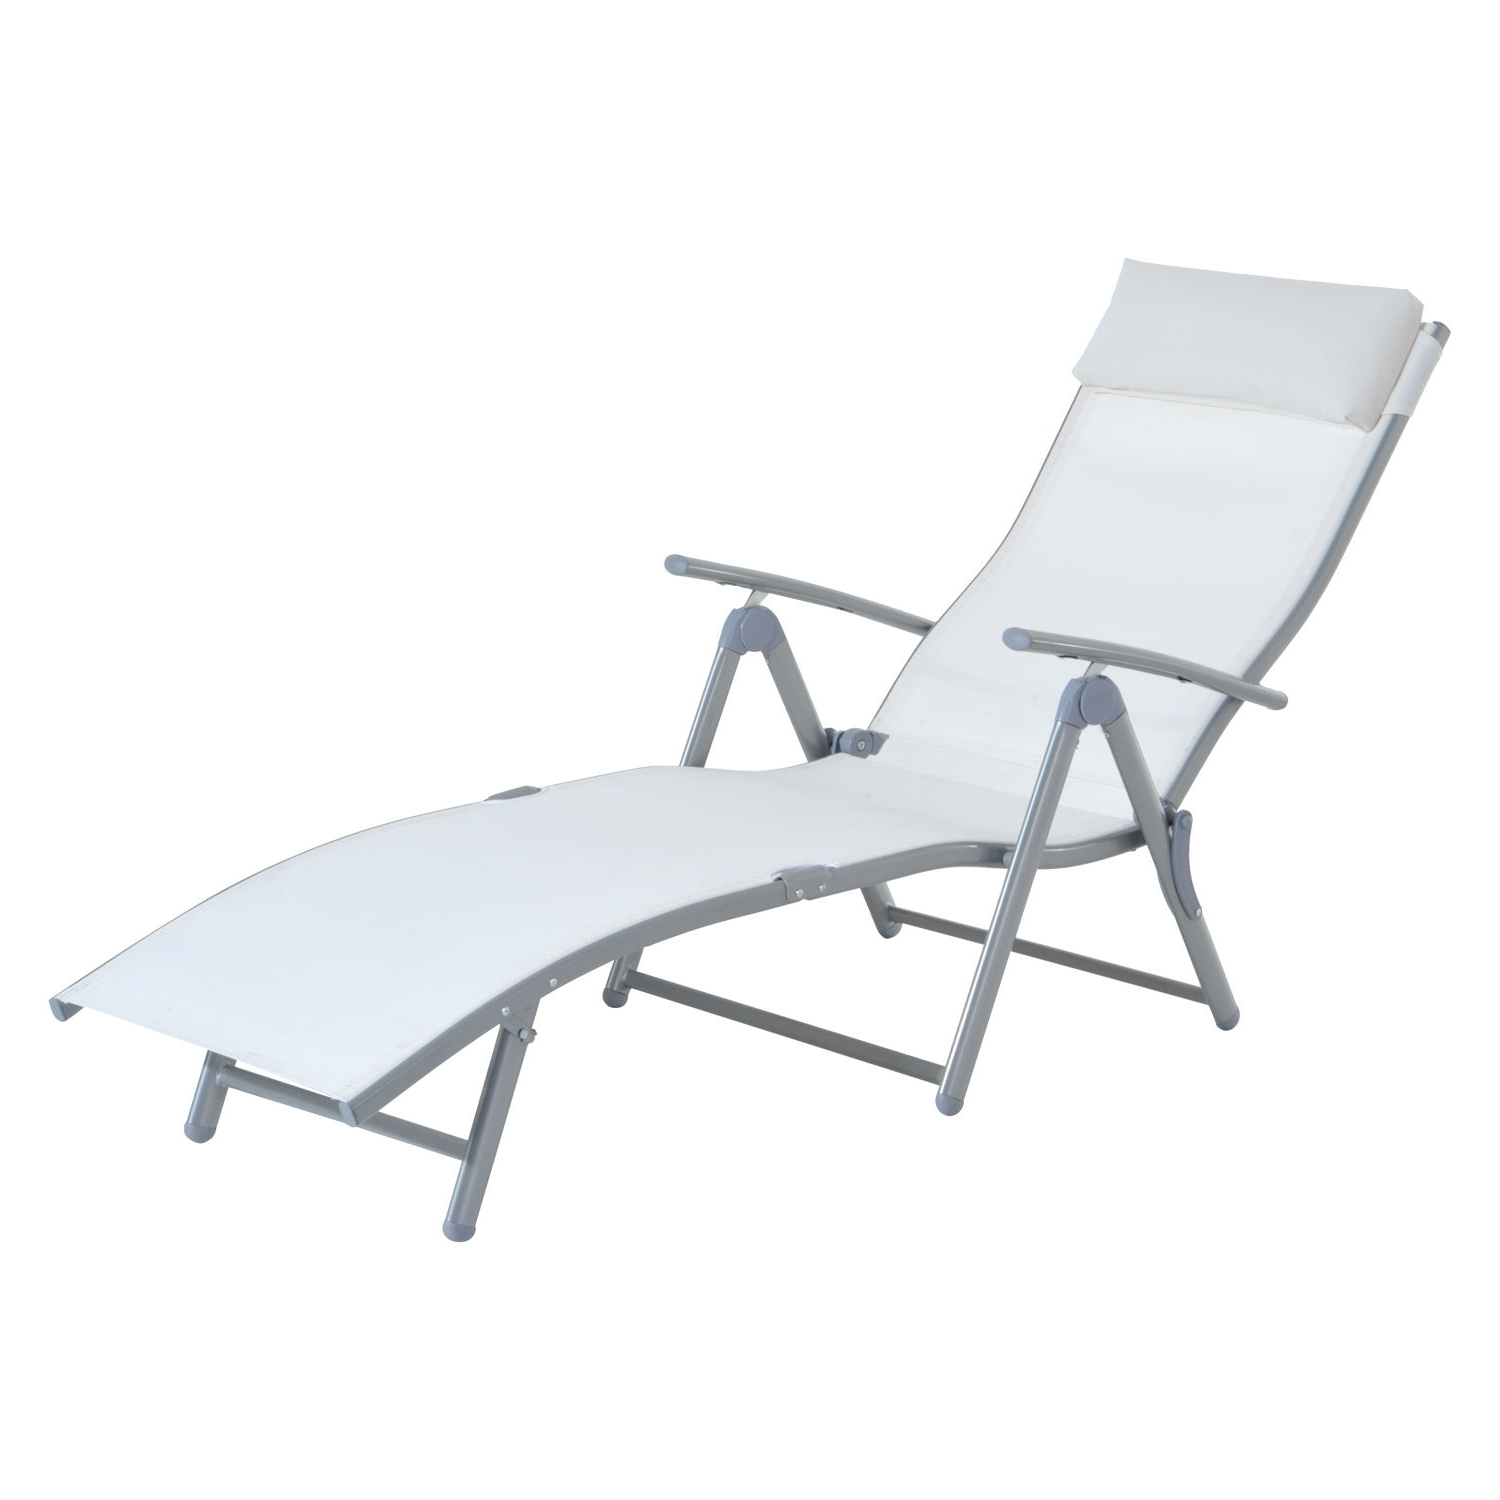 Most Current Outdoor : Lowes Chaise Lounge Indoor Outdoor Chaise Lounge Chairs Intended For Vinyl Strap Chaise Lounge Chairs (View 7 of 15)